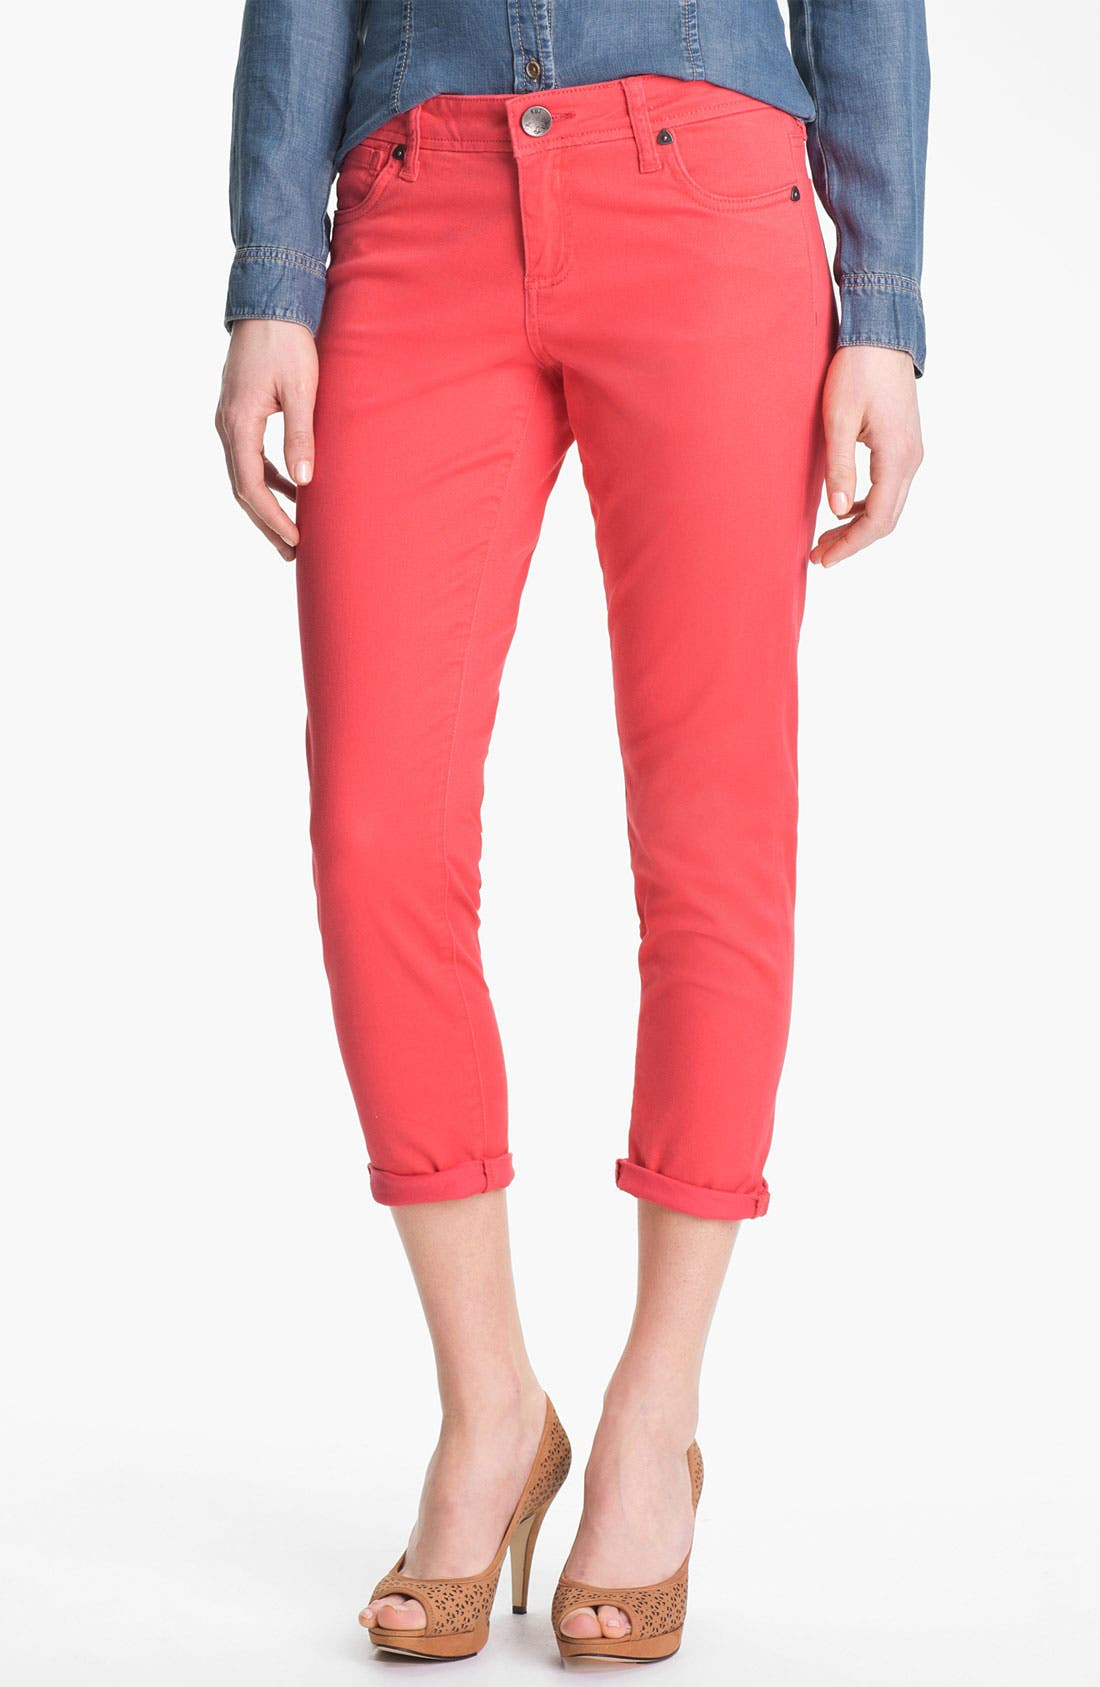 Alternate Image 1 Selected - KUT from the Kloth 'Catherine' Slim Boyfriend Jeans